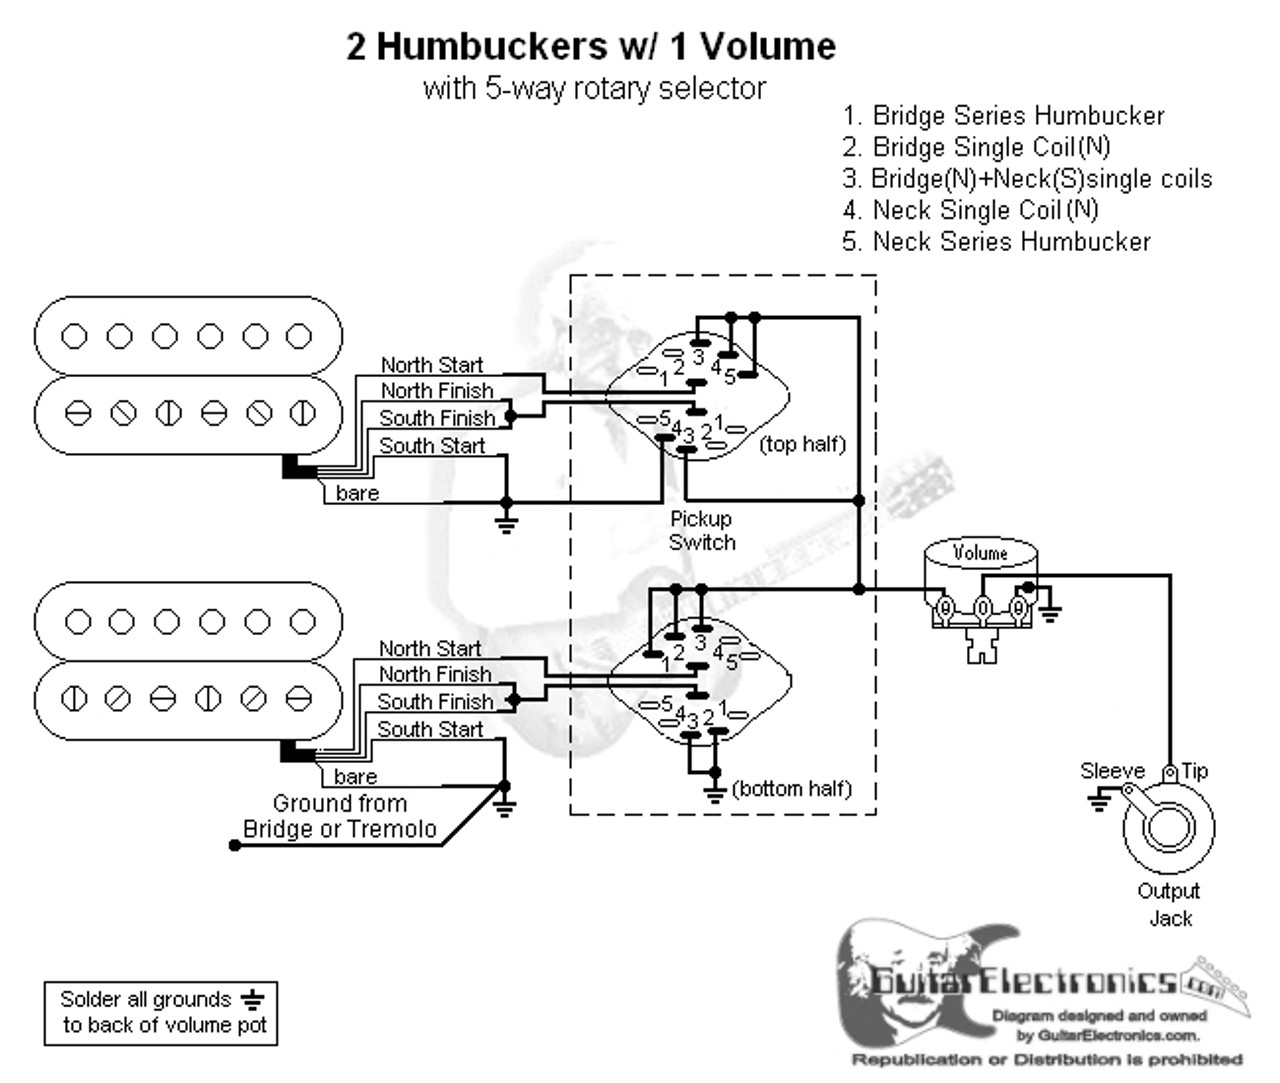 small resolution of 2 humbuckers 5 way rotary switch 1 volume 01 5 way switch wiring diagram leviton 5 way rotary switch wiring diagram